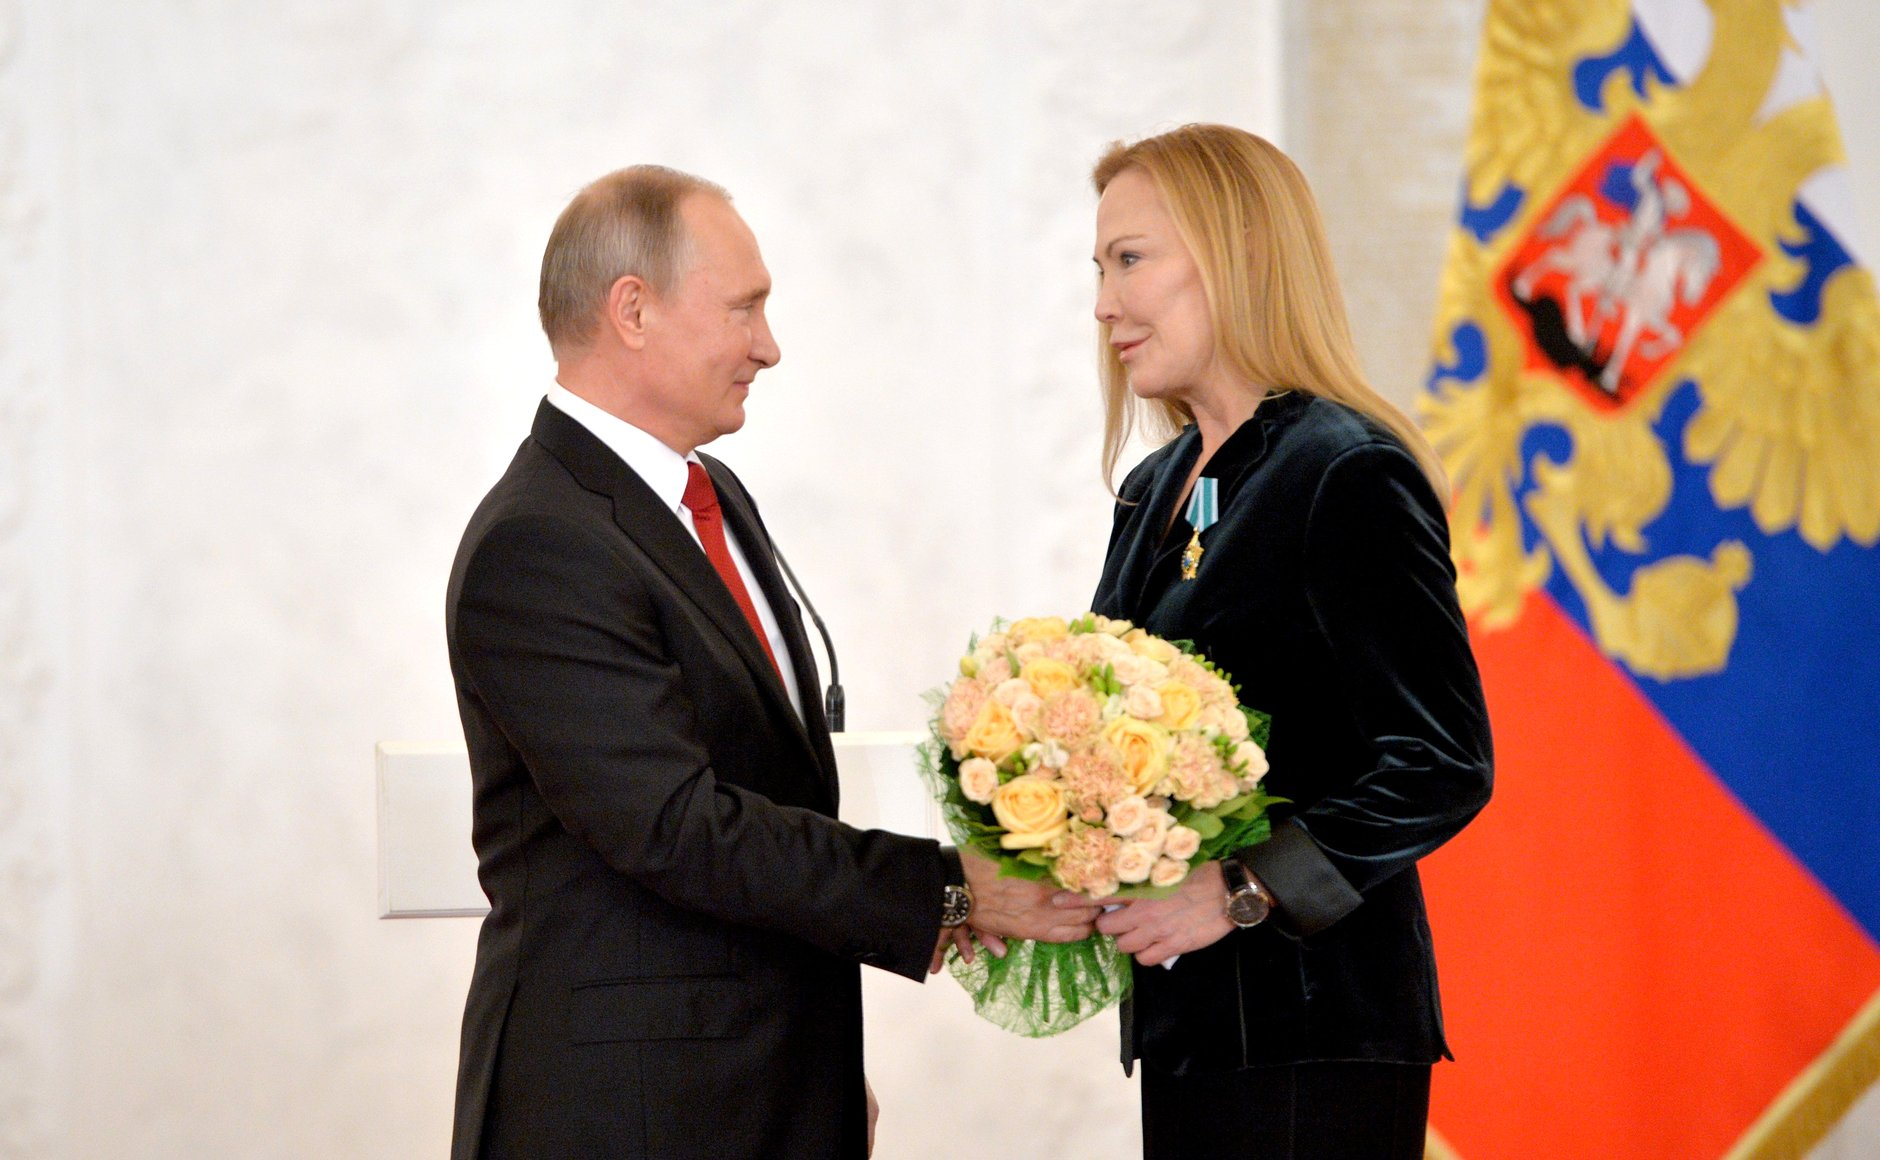 Russian president praised programs initiated in the U.S. by philanthropist Susan Lehrman.